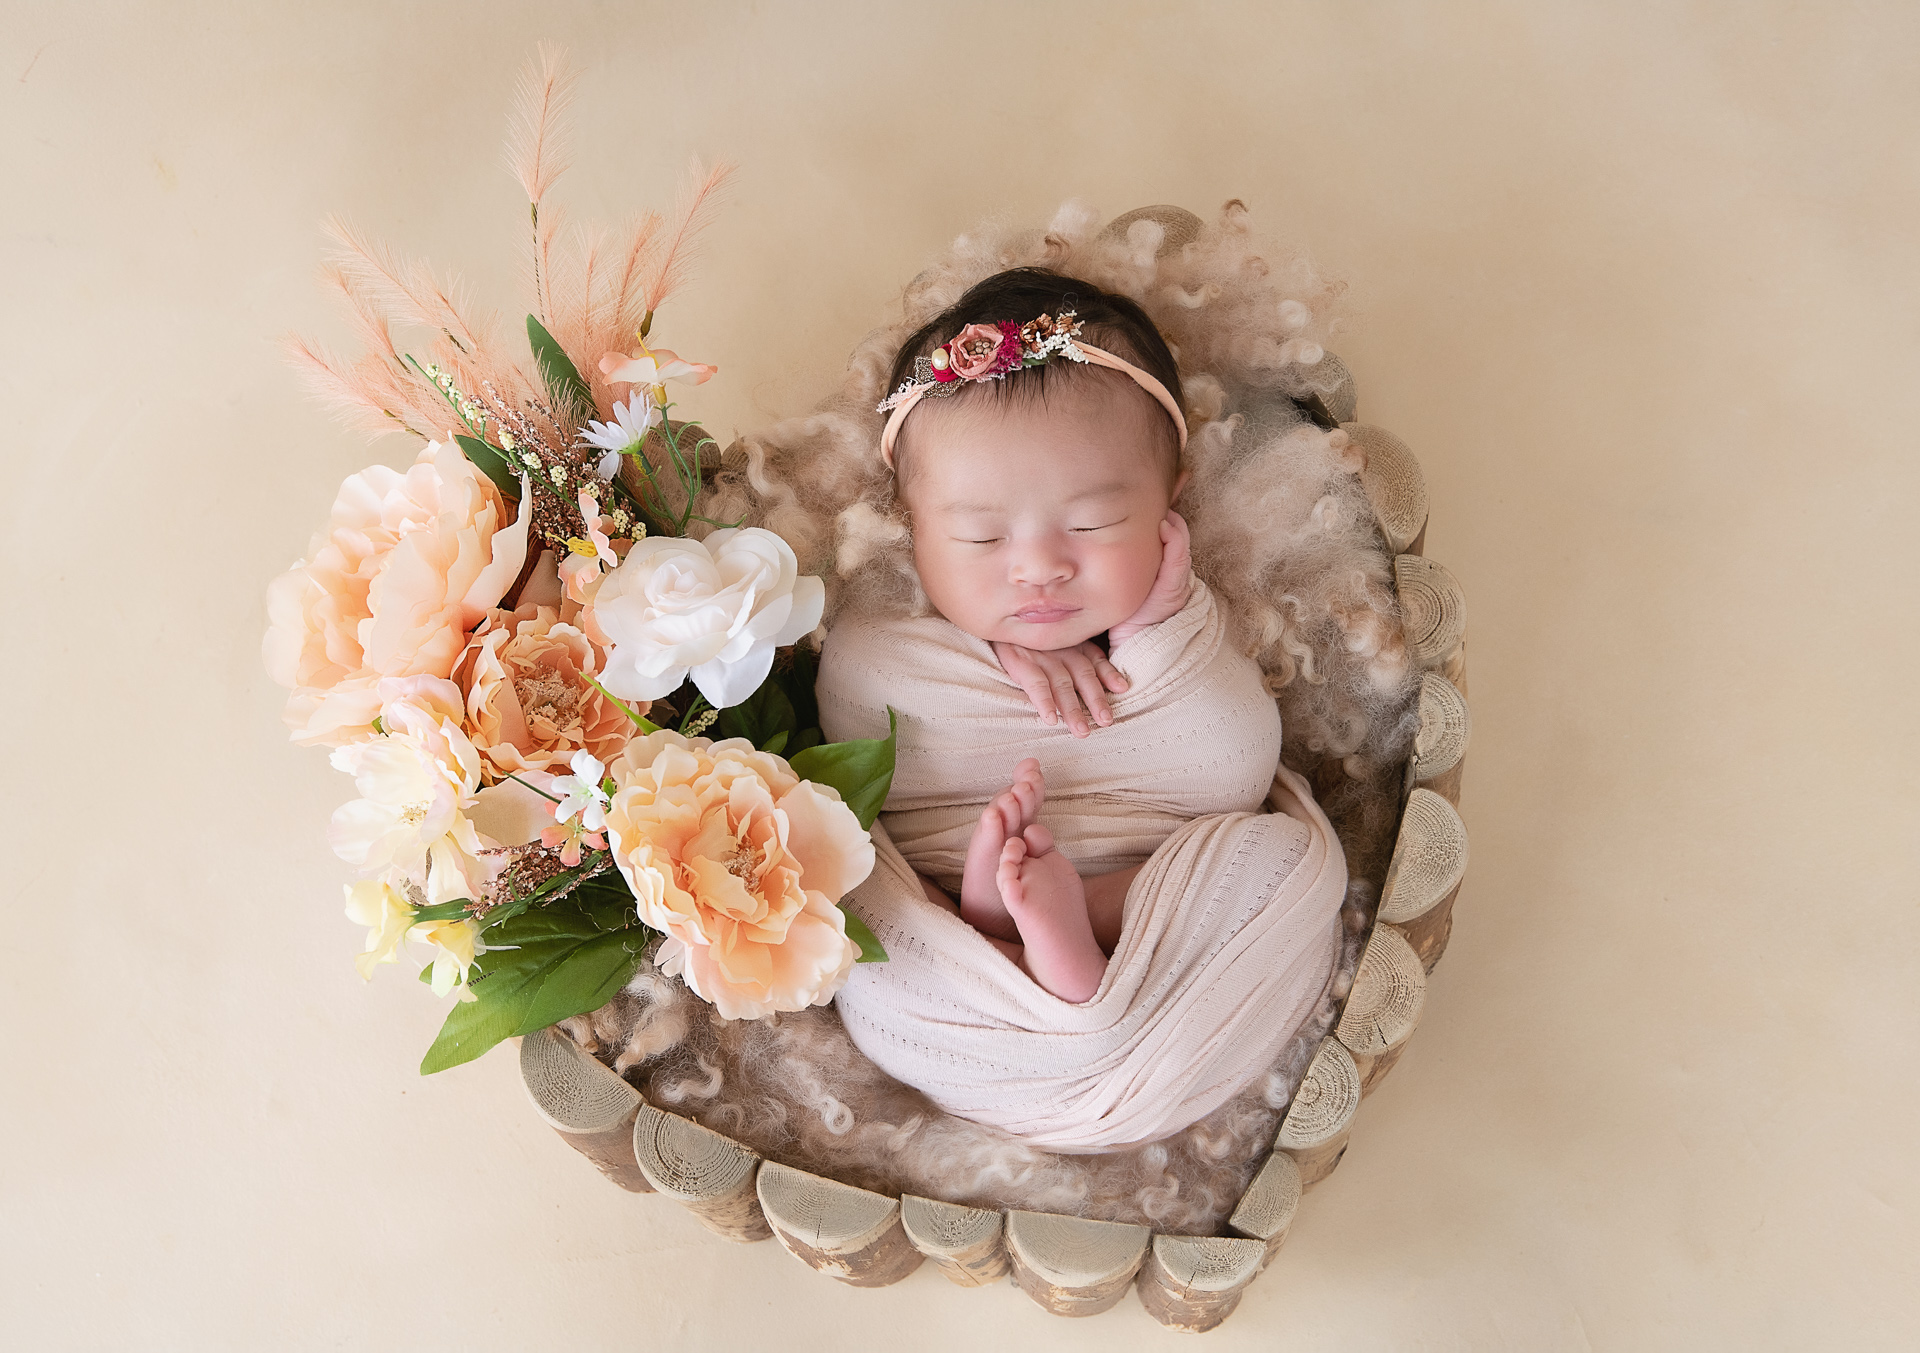 Newborn on light pink wrap and headband rests on heart shaped wood prop. Flowers decorate the scene. Beige backdrop.